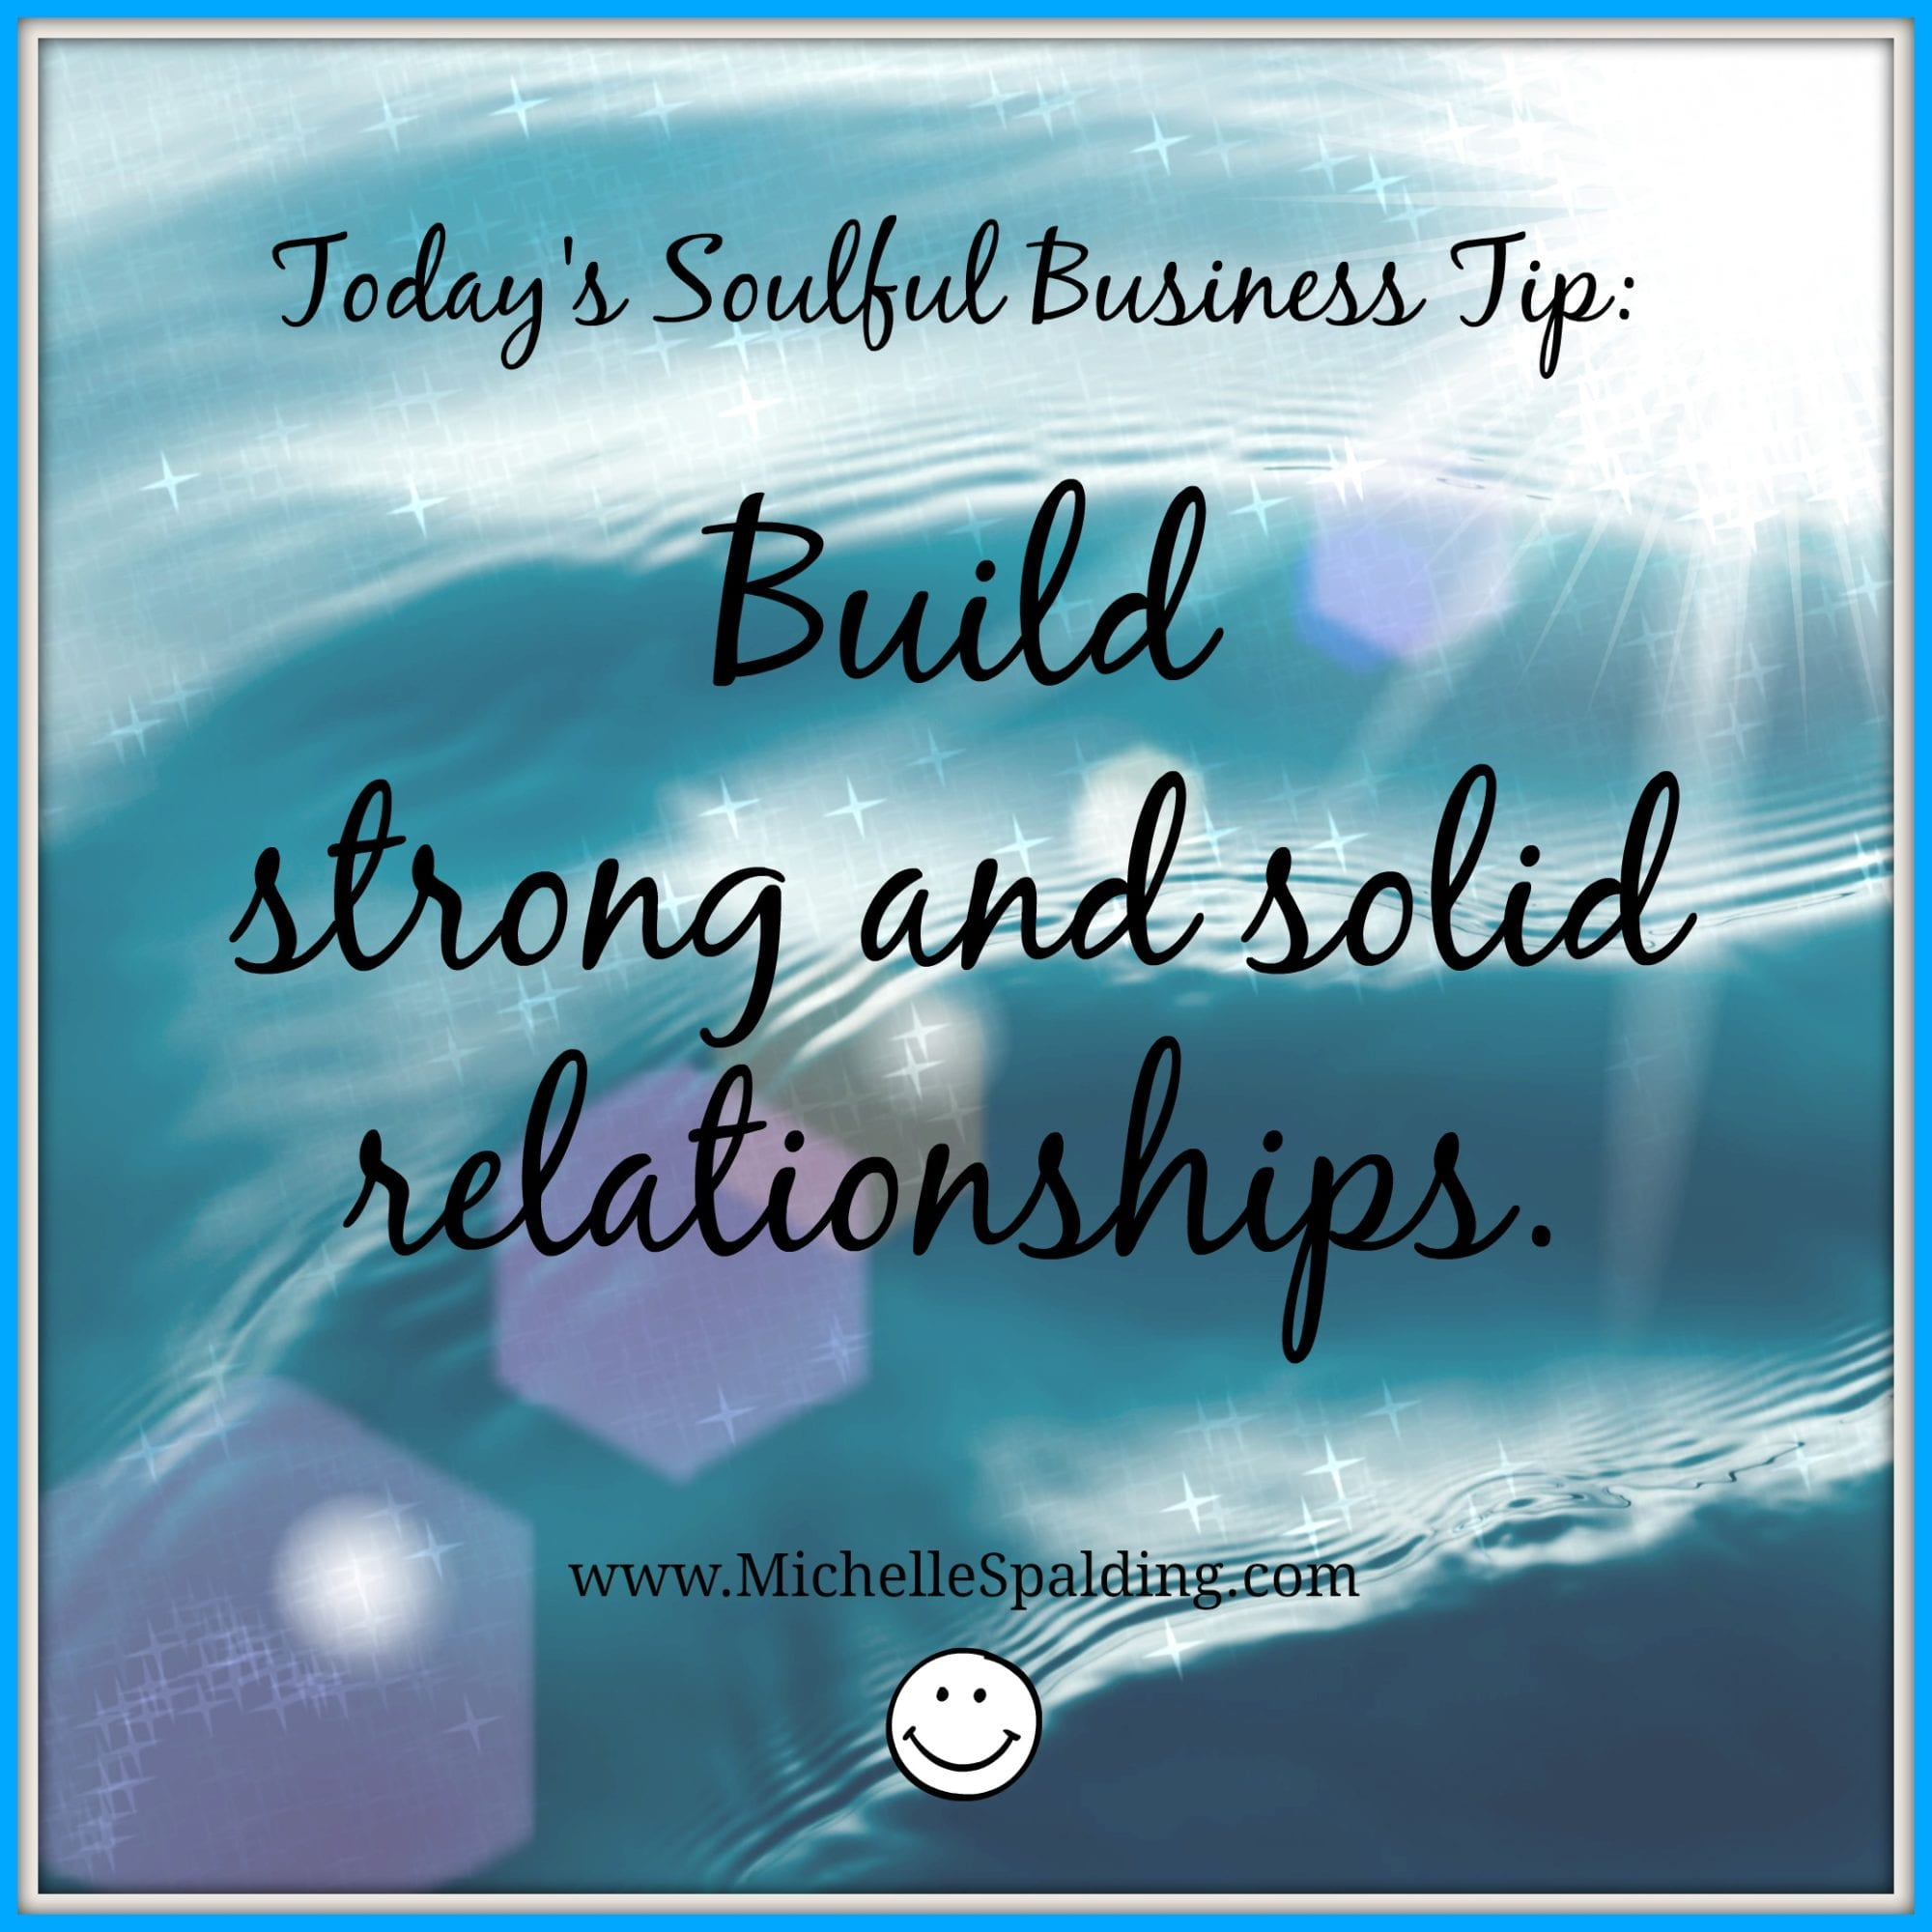 Build strong and solid relationships